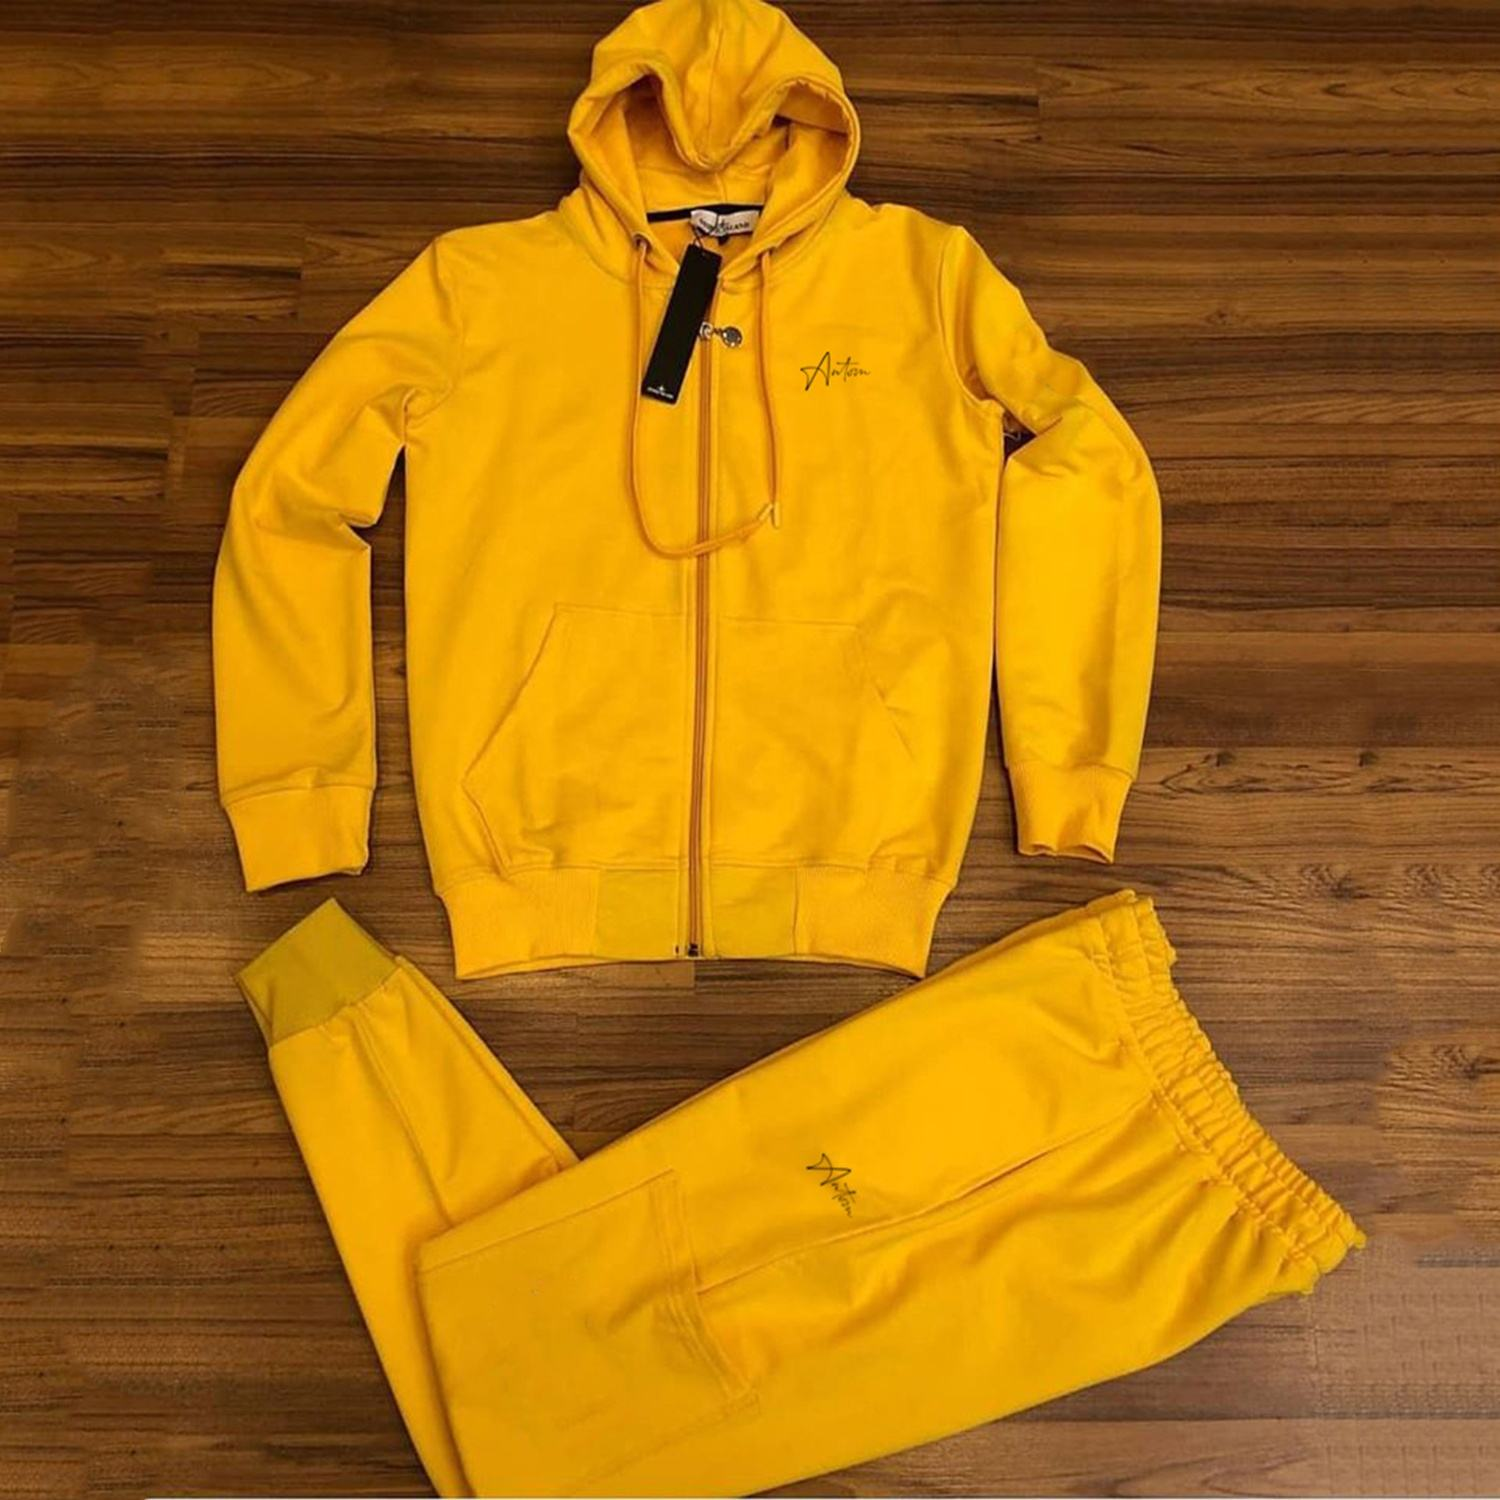 2020 Wholesale sweat suits sportswear men plain fitted tracksuit Made by Antom Enterprises